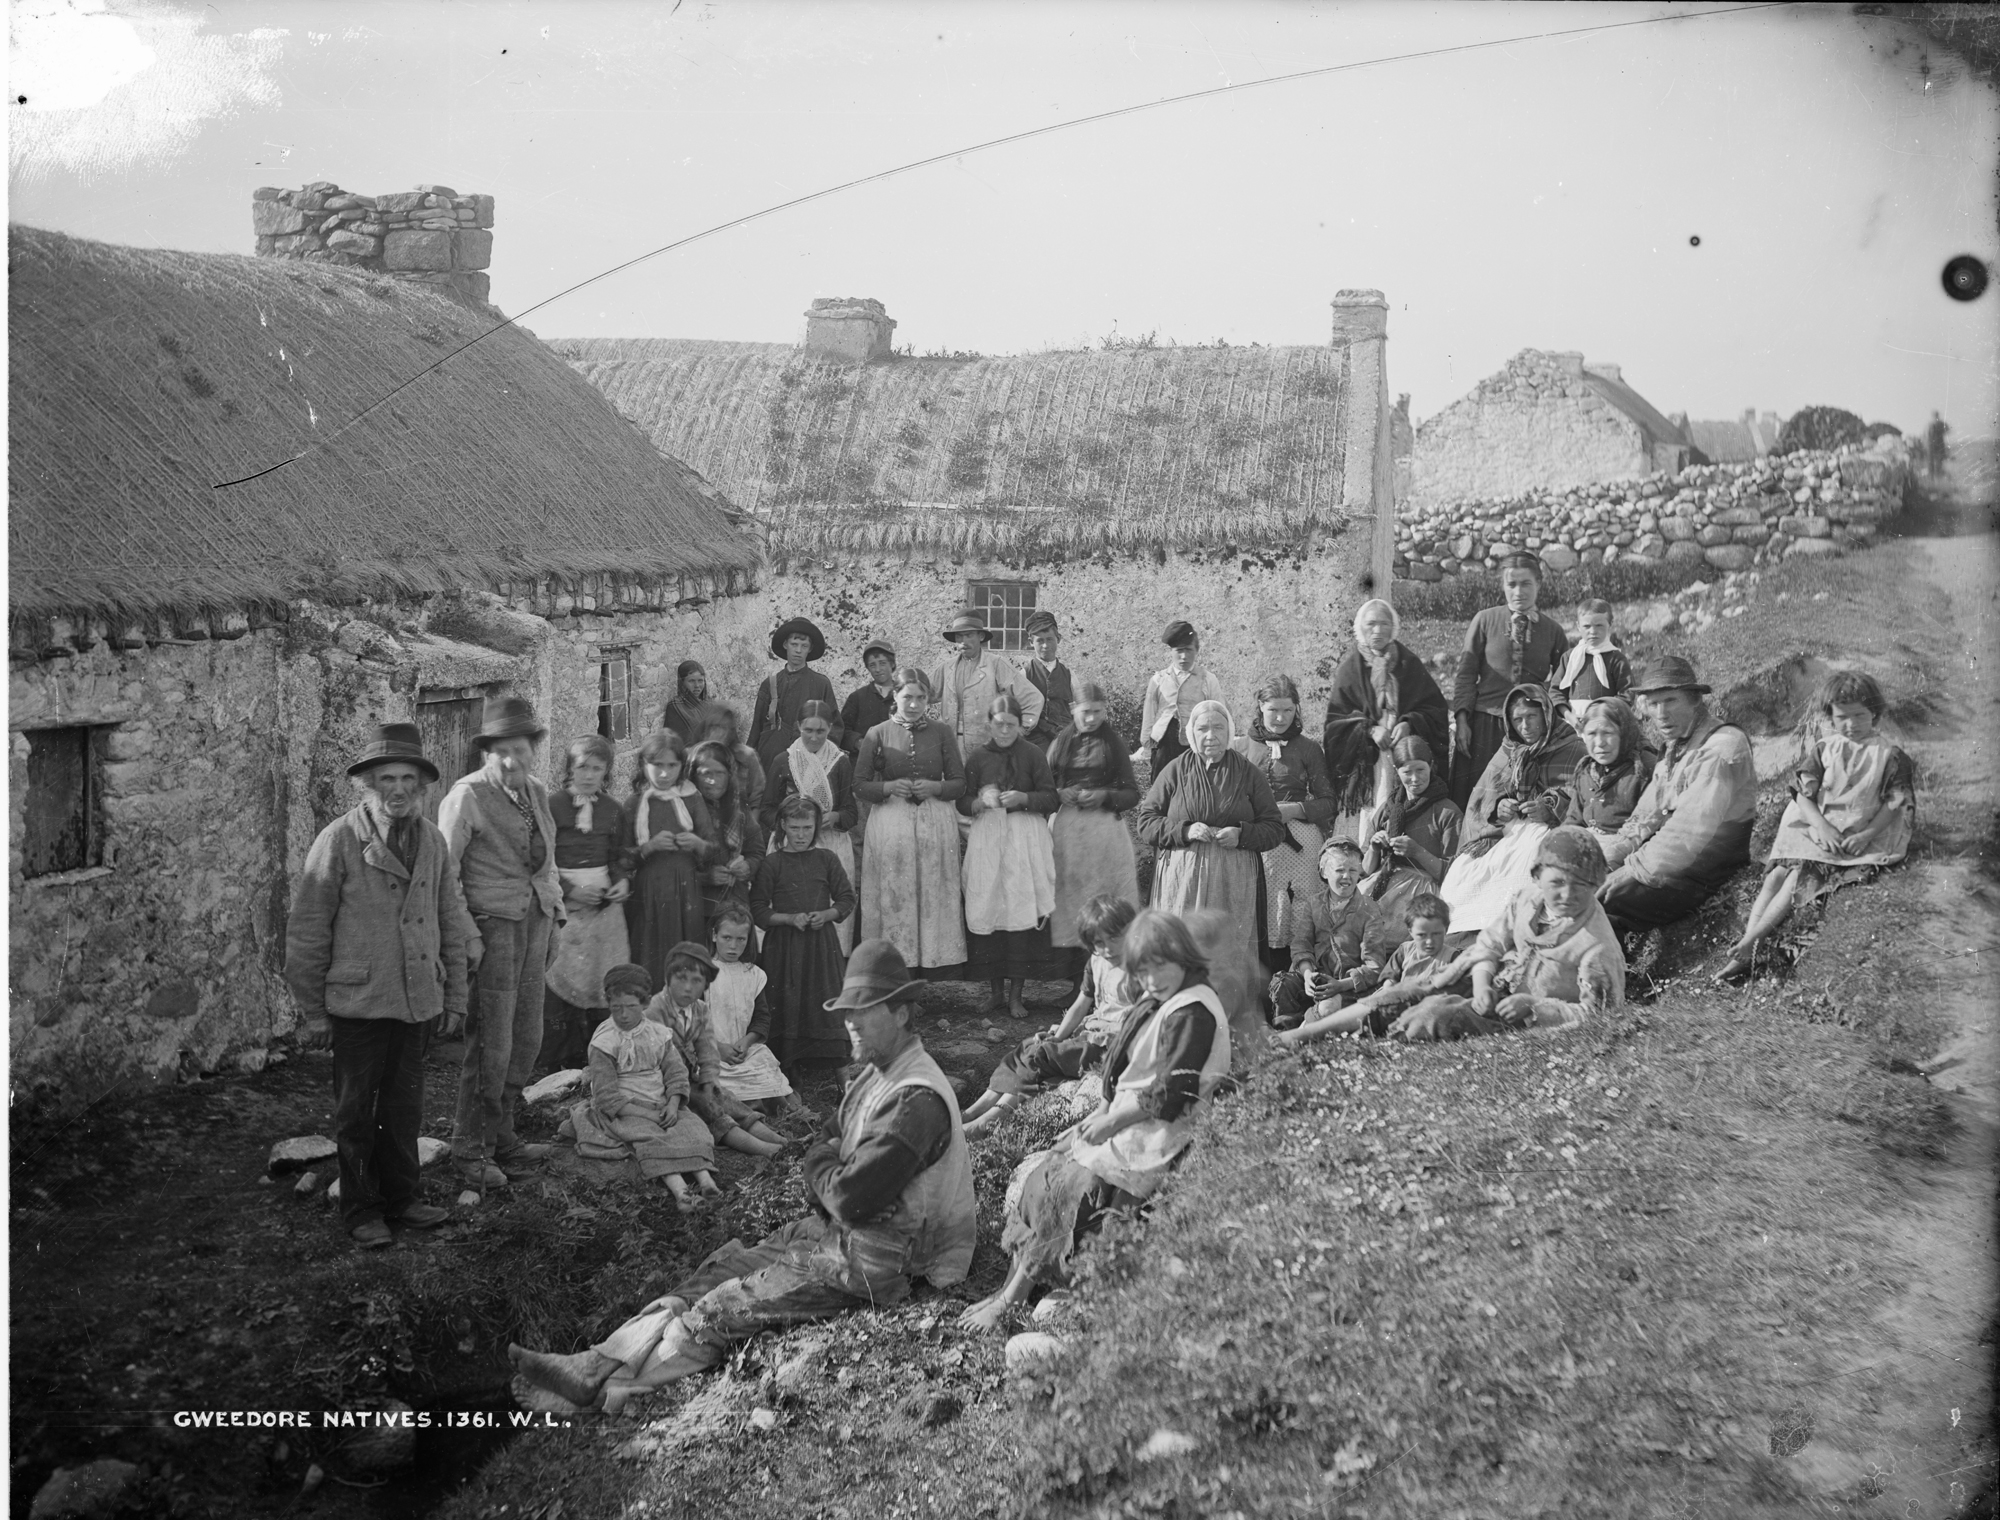 Gweedore Natives, Gweedore, Co. Donegal